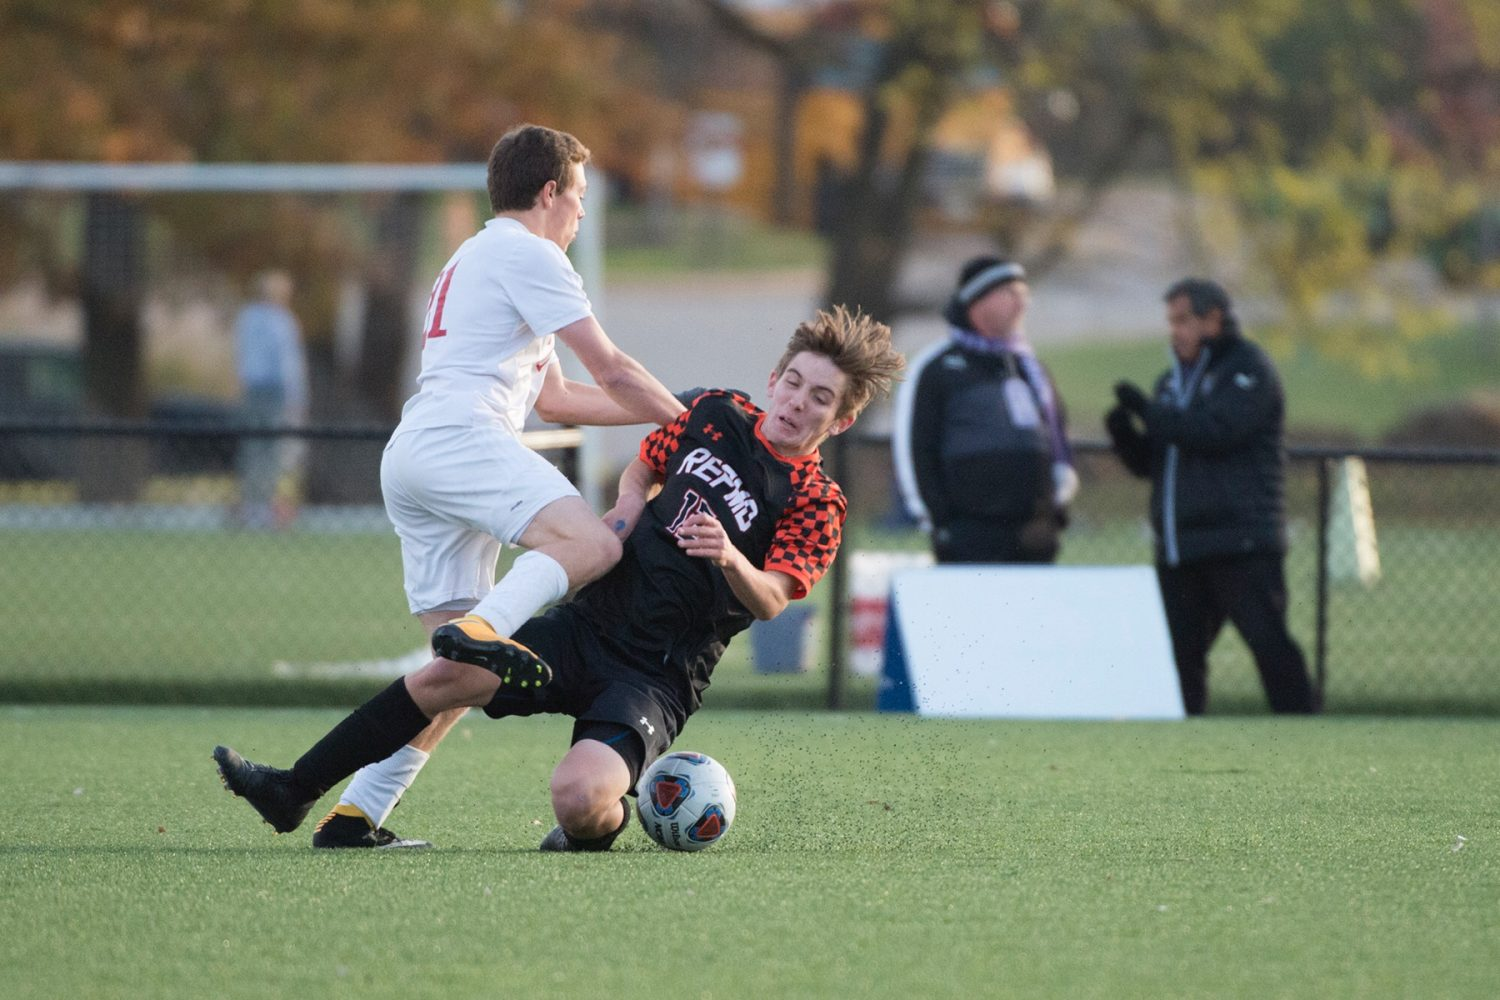 Photos: Soccer Semifinals Vs Parkway Central